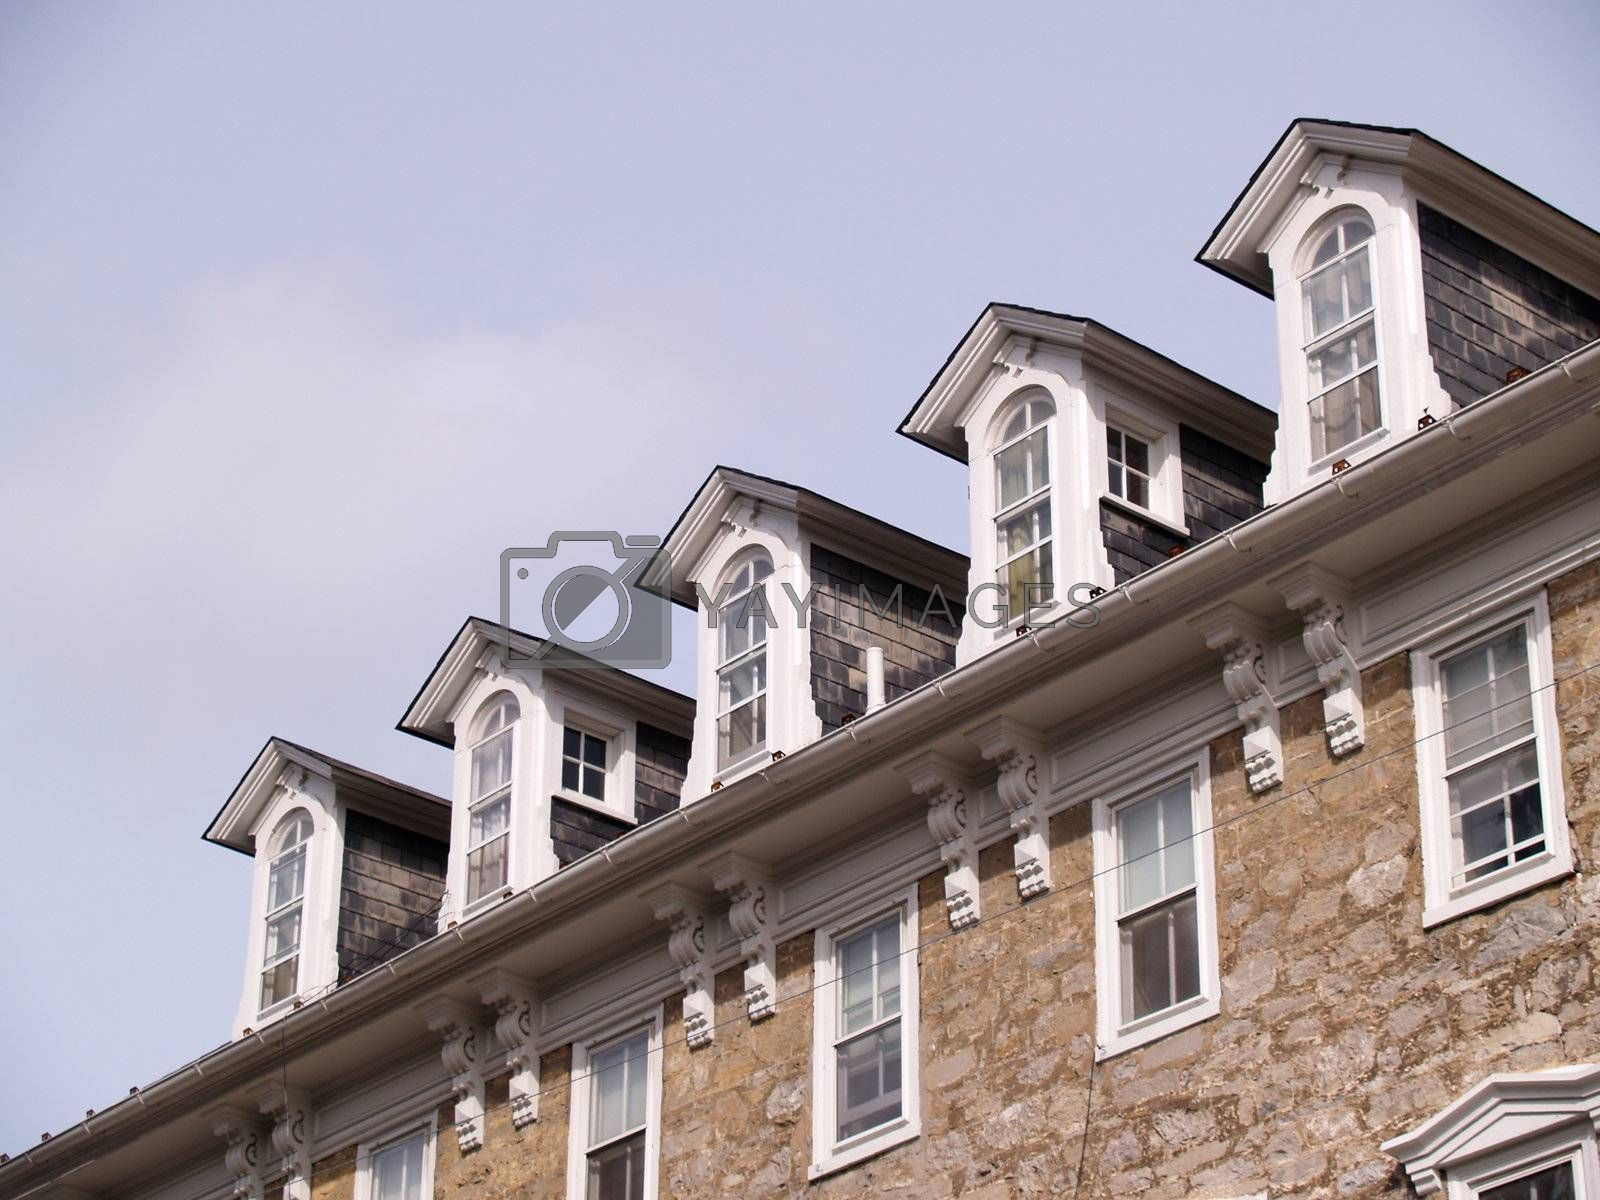 rooftop windows for an old stone building